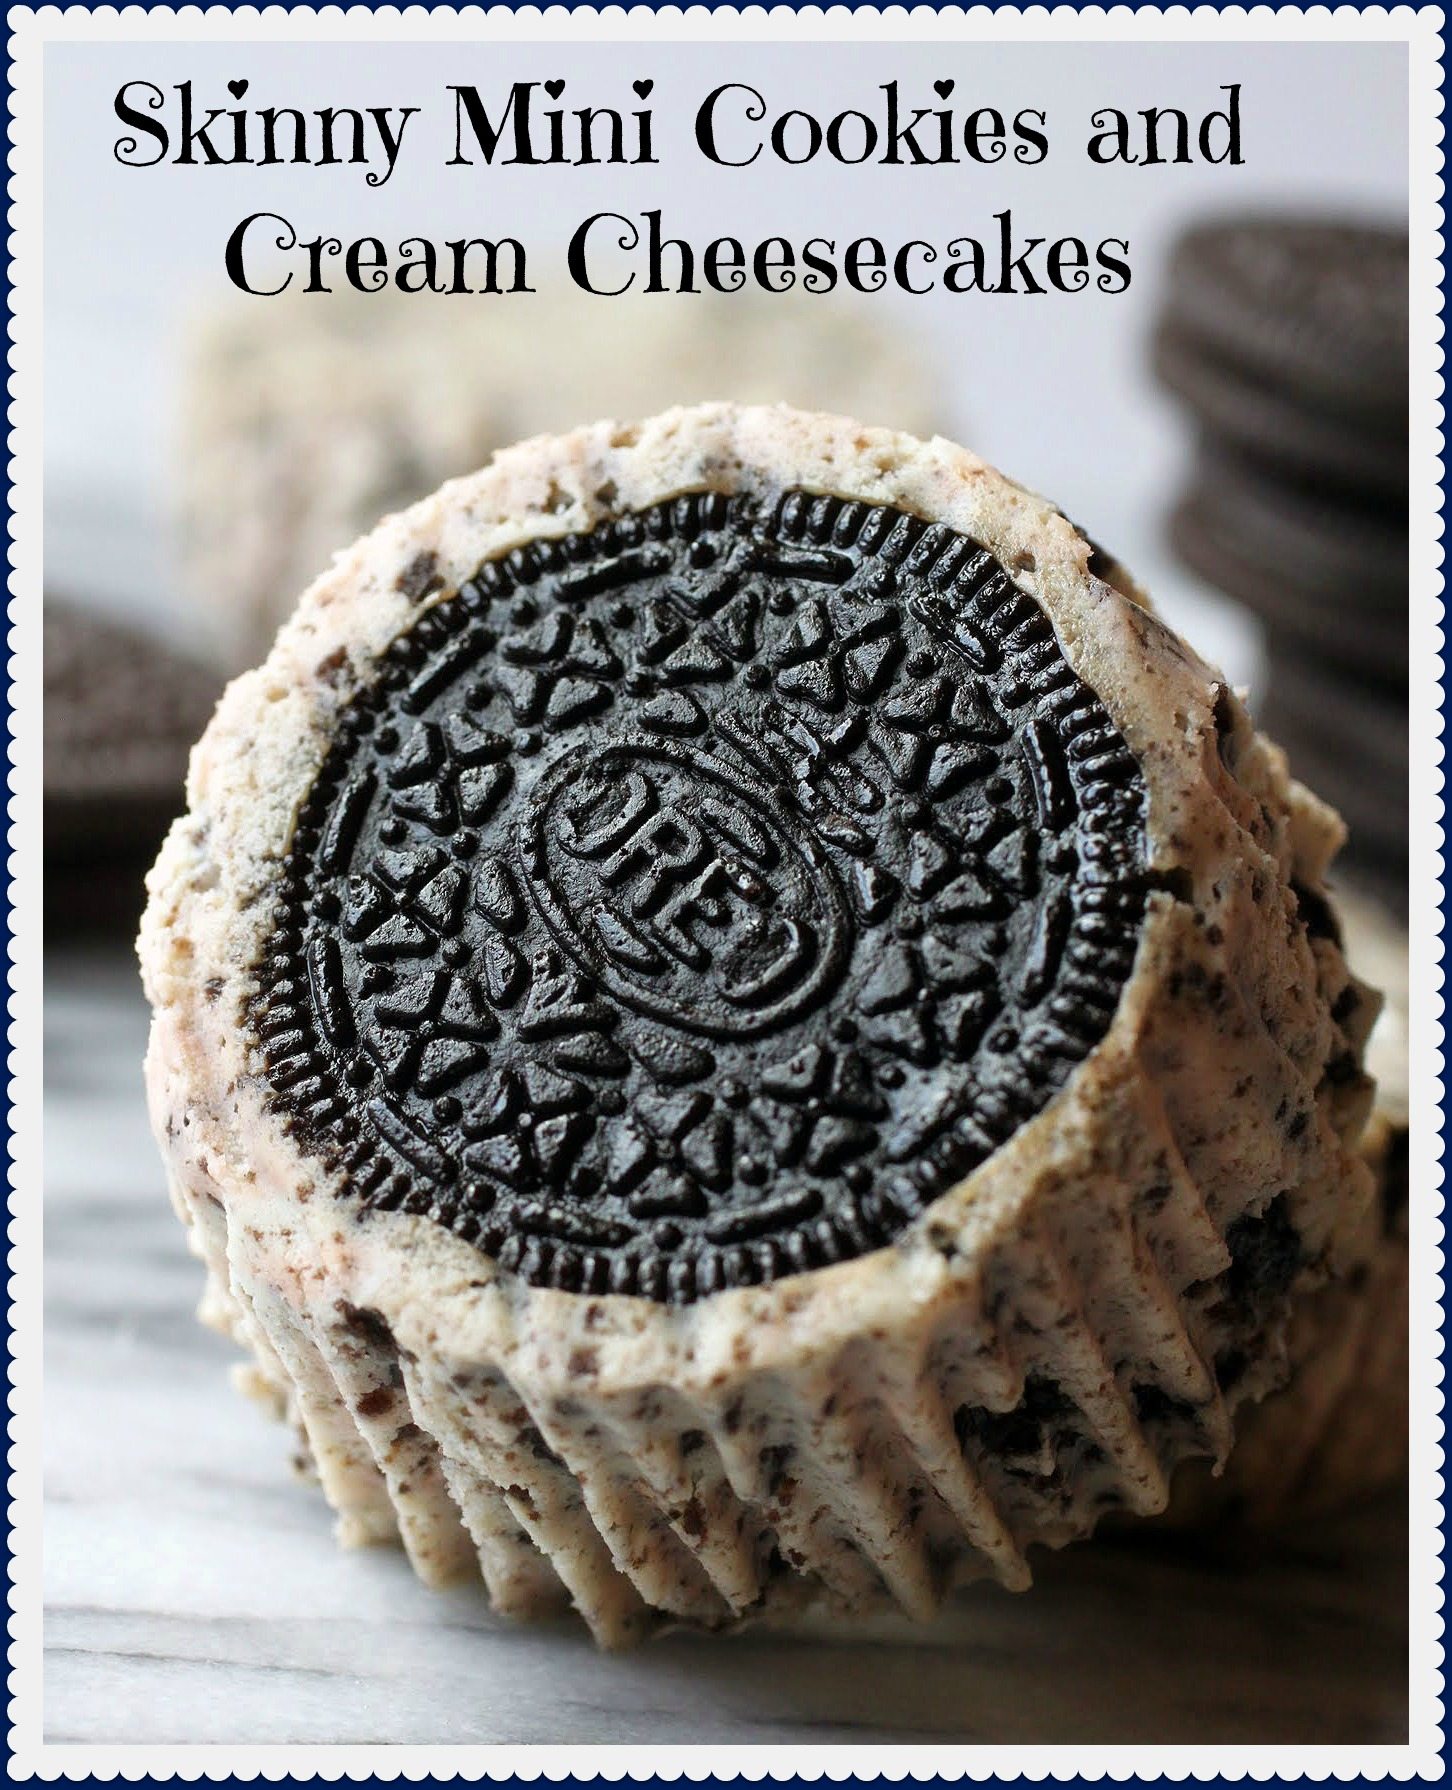 Skinny Mini Cookies and Cream Cheesecakes